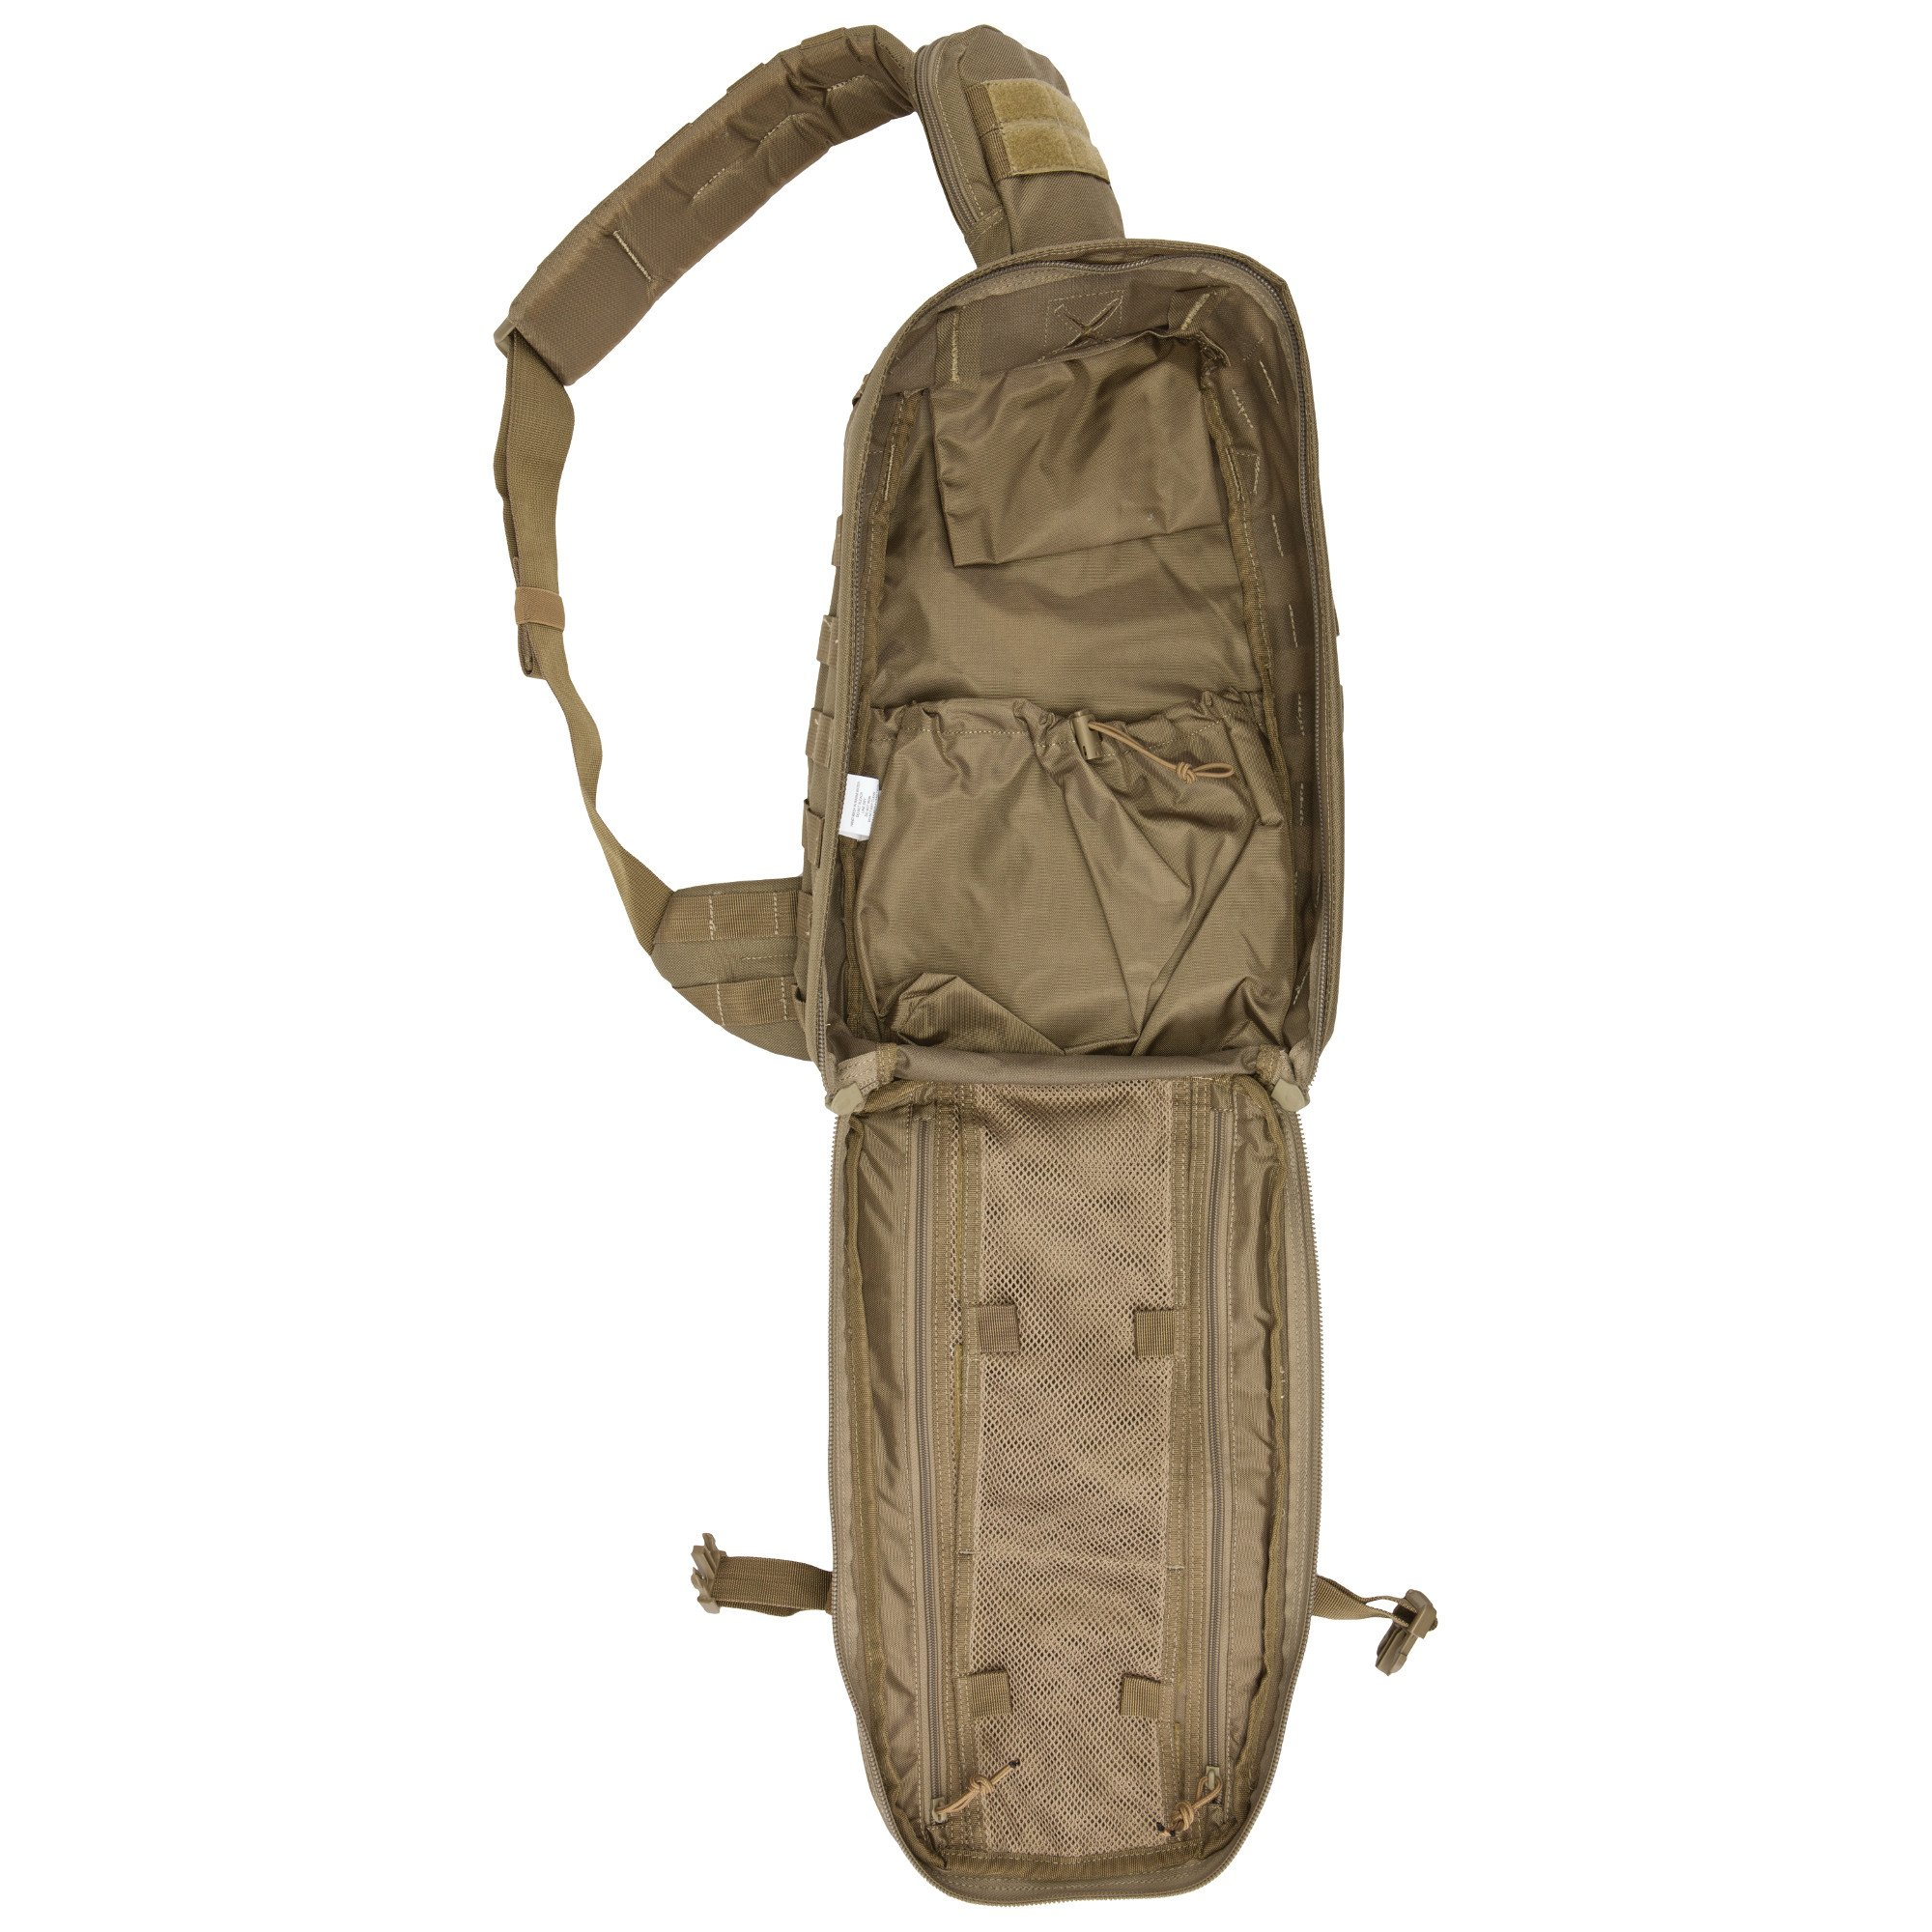 Balo 5.11 Tactical Moab 10 – Double Tap